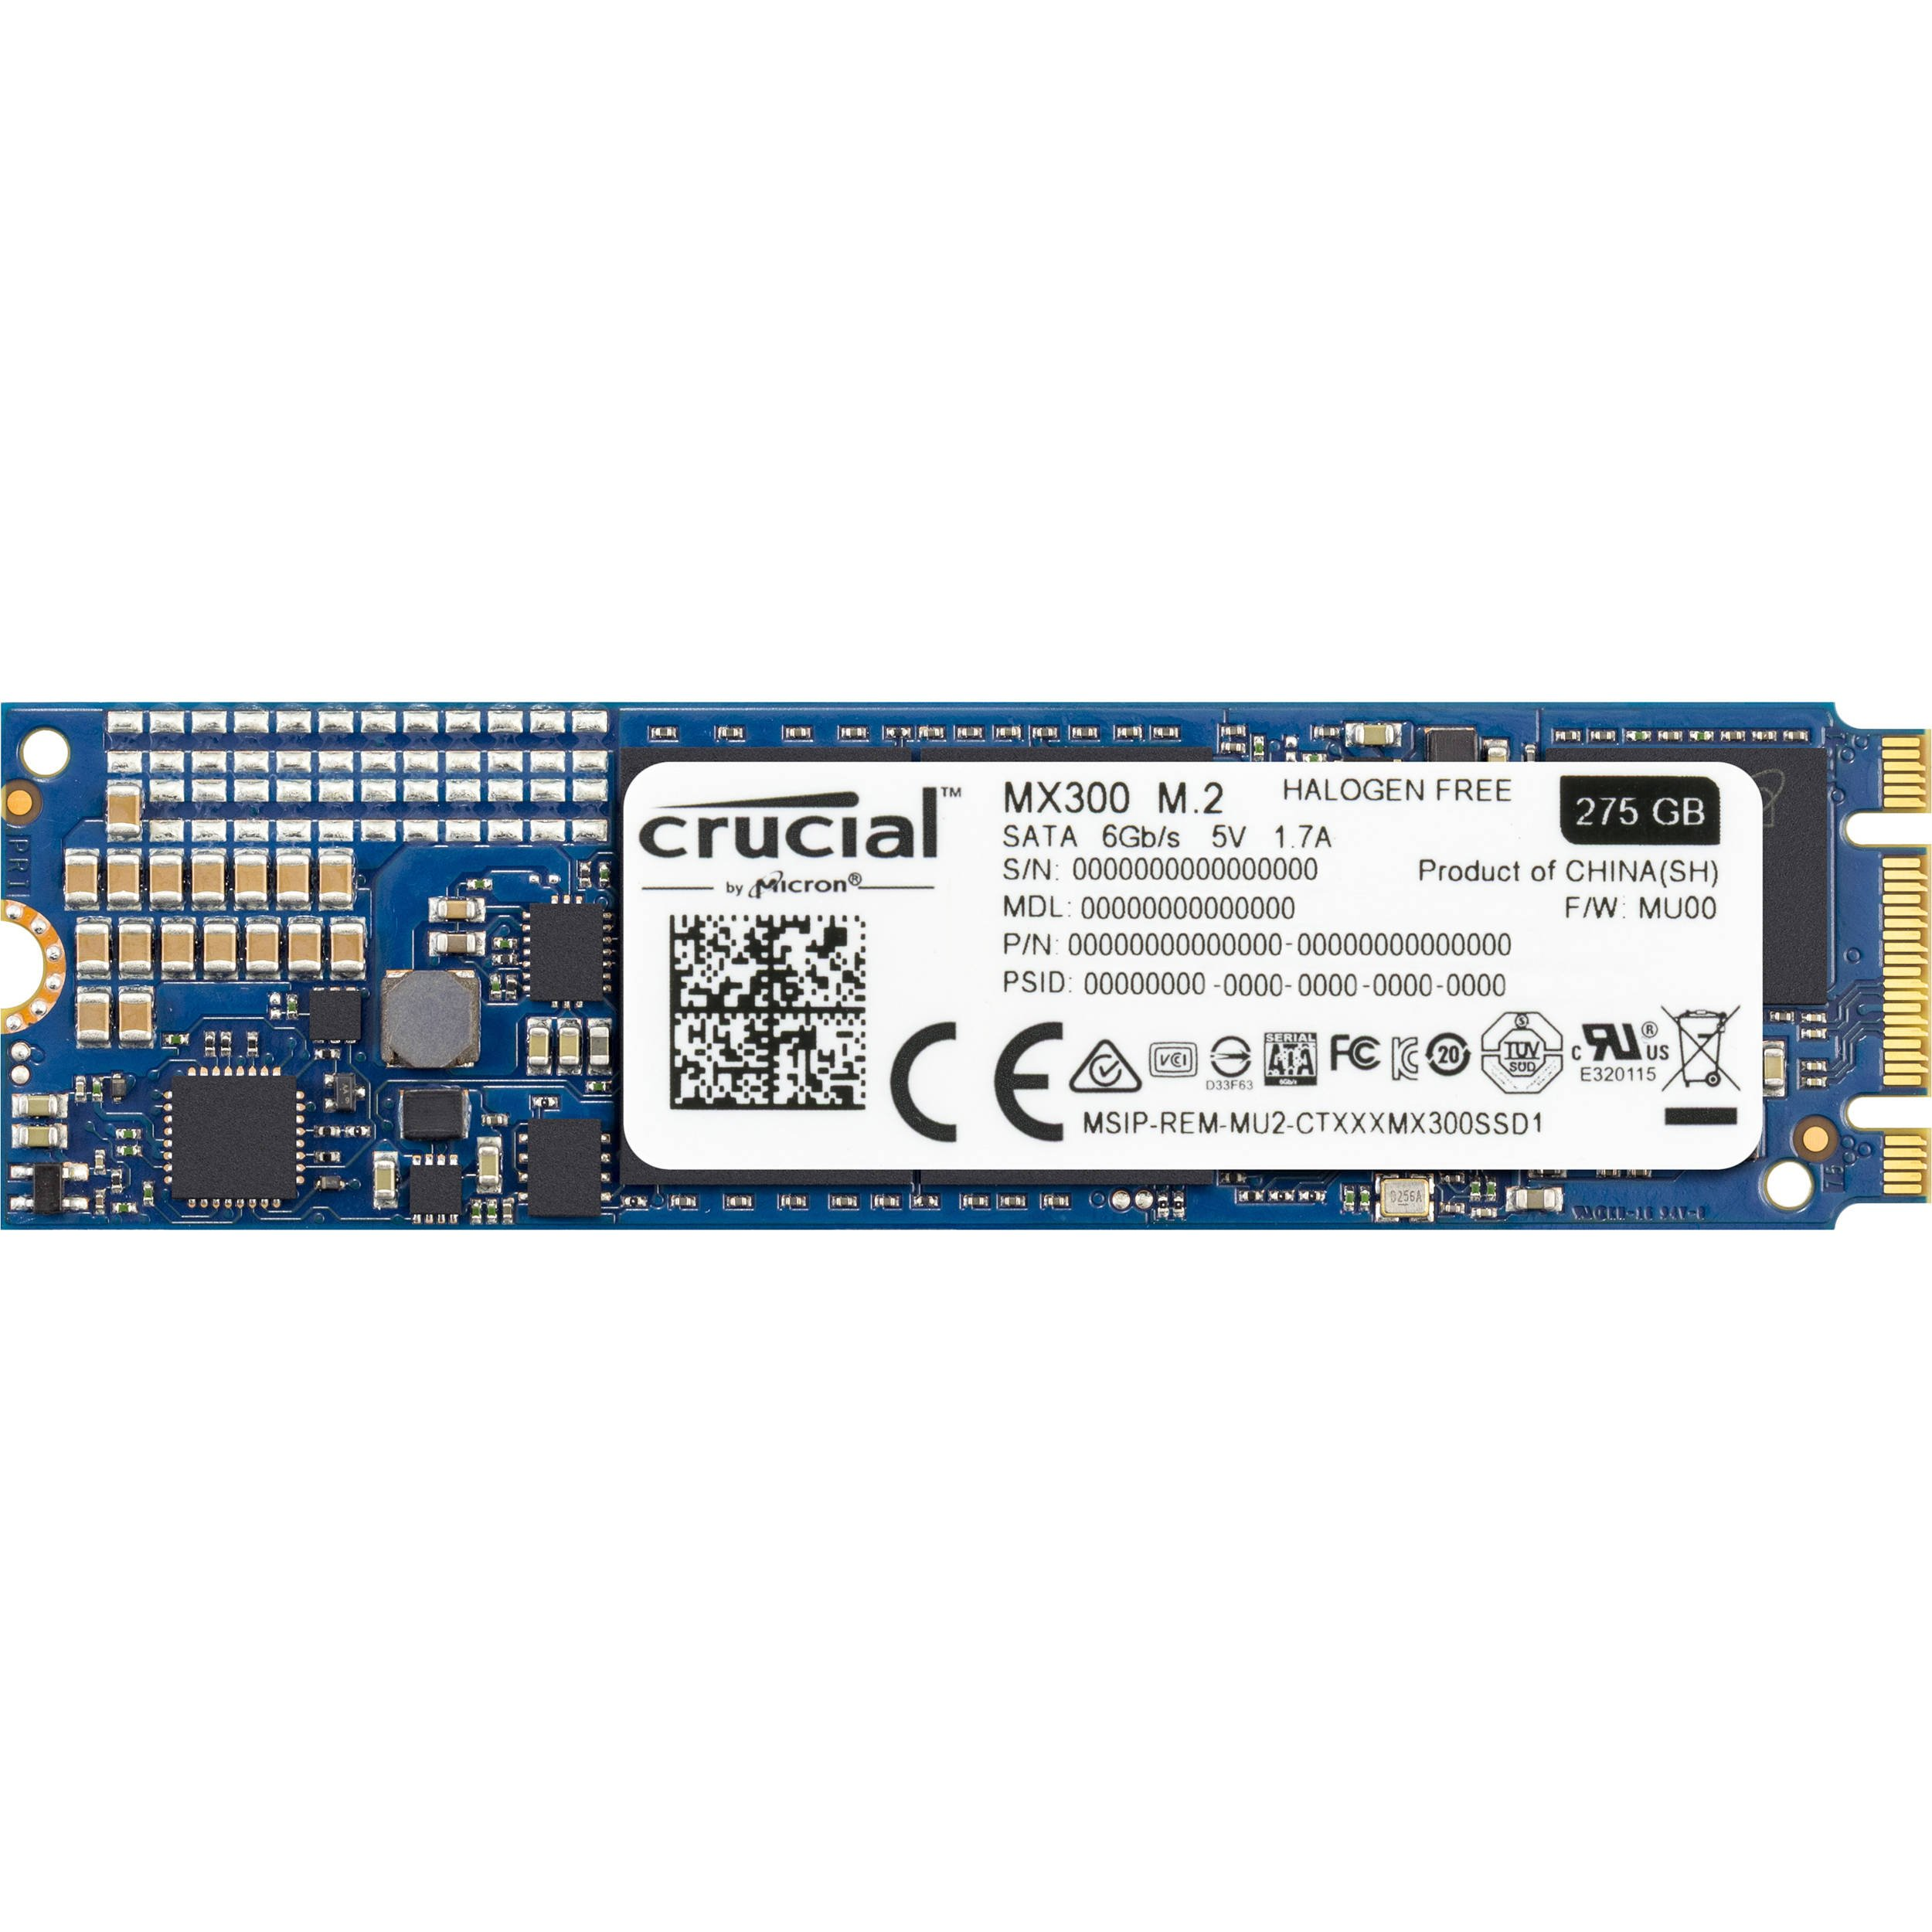 Crucial MX300 275GB M.2 (2280) Internal Solid State Drive - CT275MX300SSD4 by Crucial